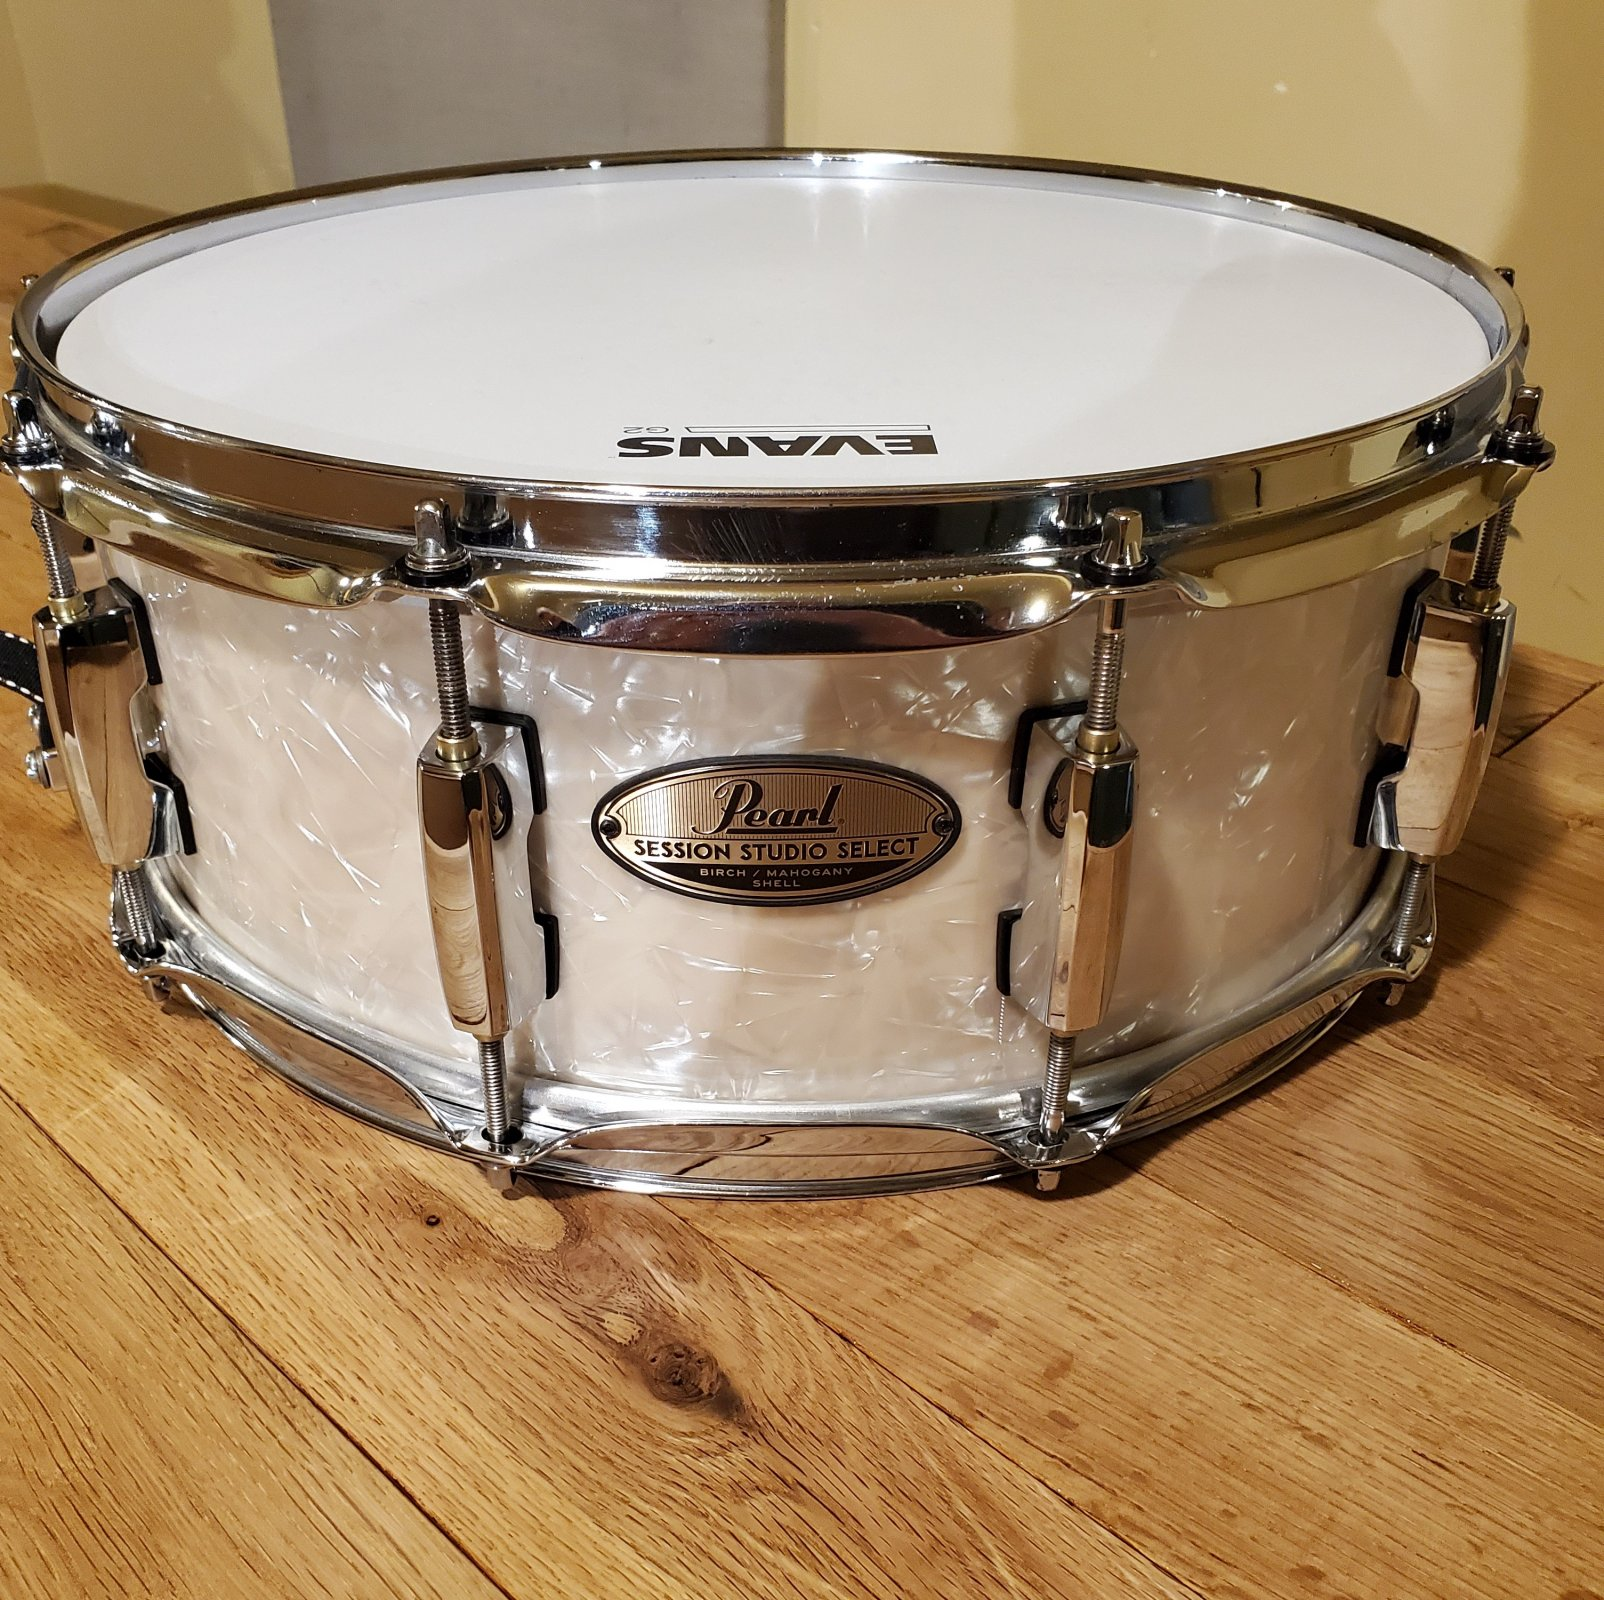 used Pearl Session Studio Select Snare 14 x 5.5